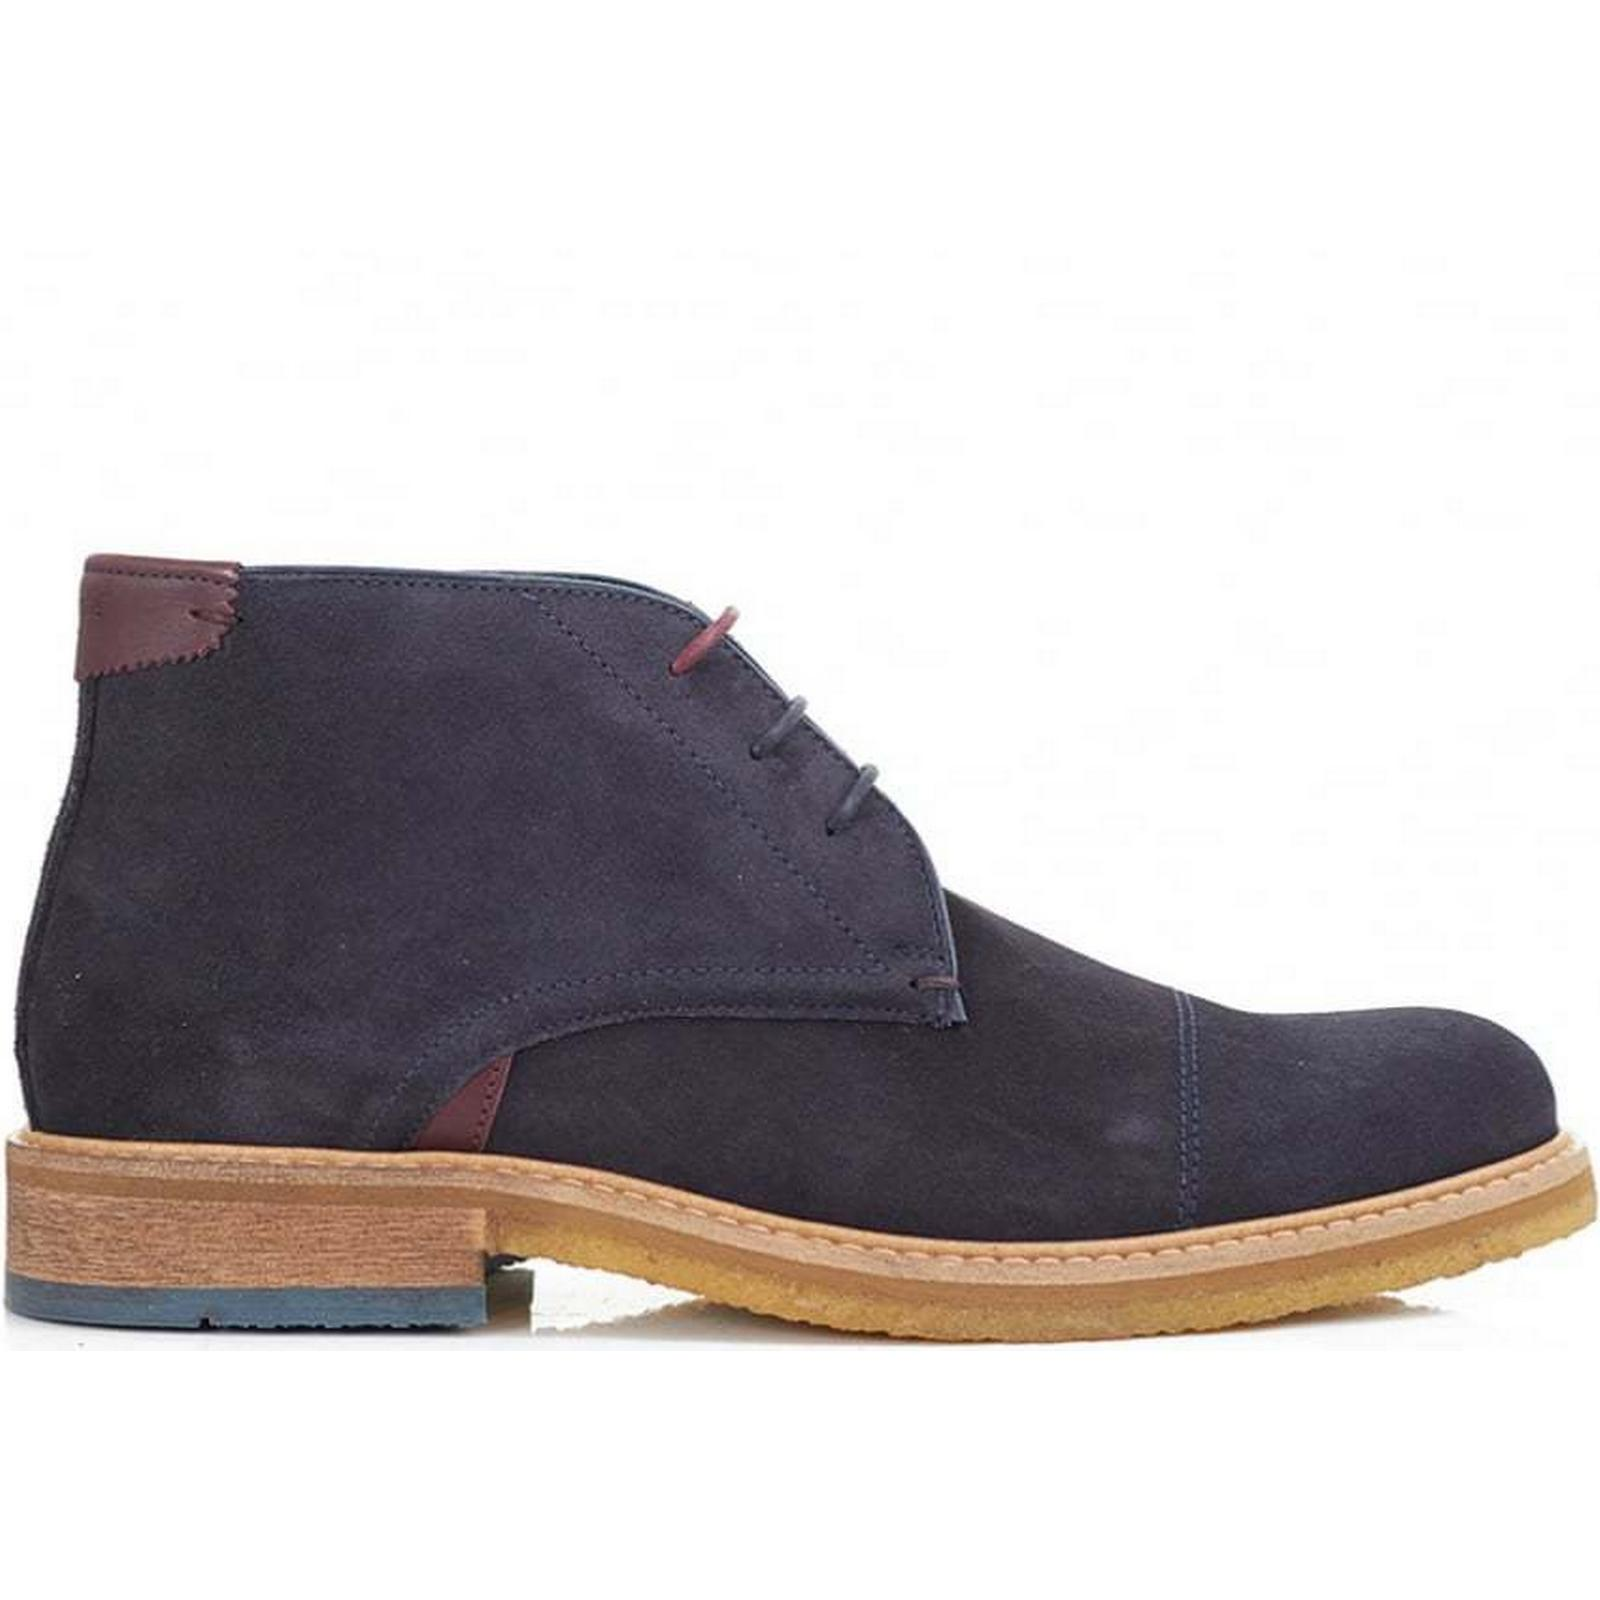 Ted Baker Boots Tomlin Crepe Sole Chukka Boots Baker Colour: DARK BLUE, Size: 8 b8f6c0